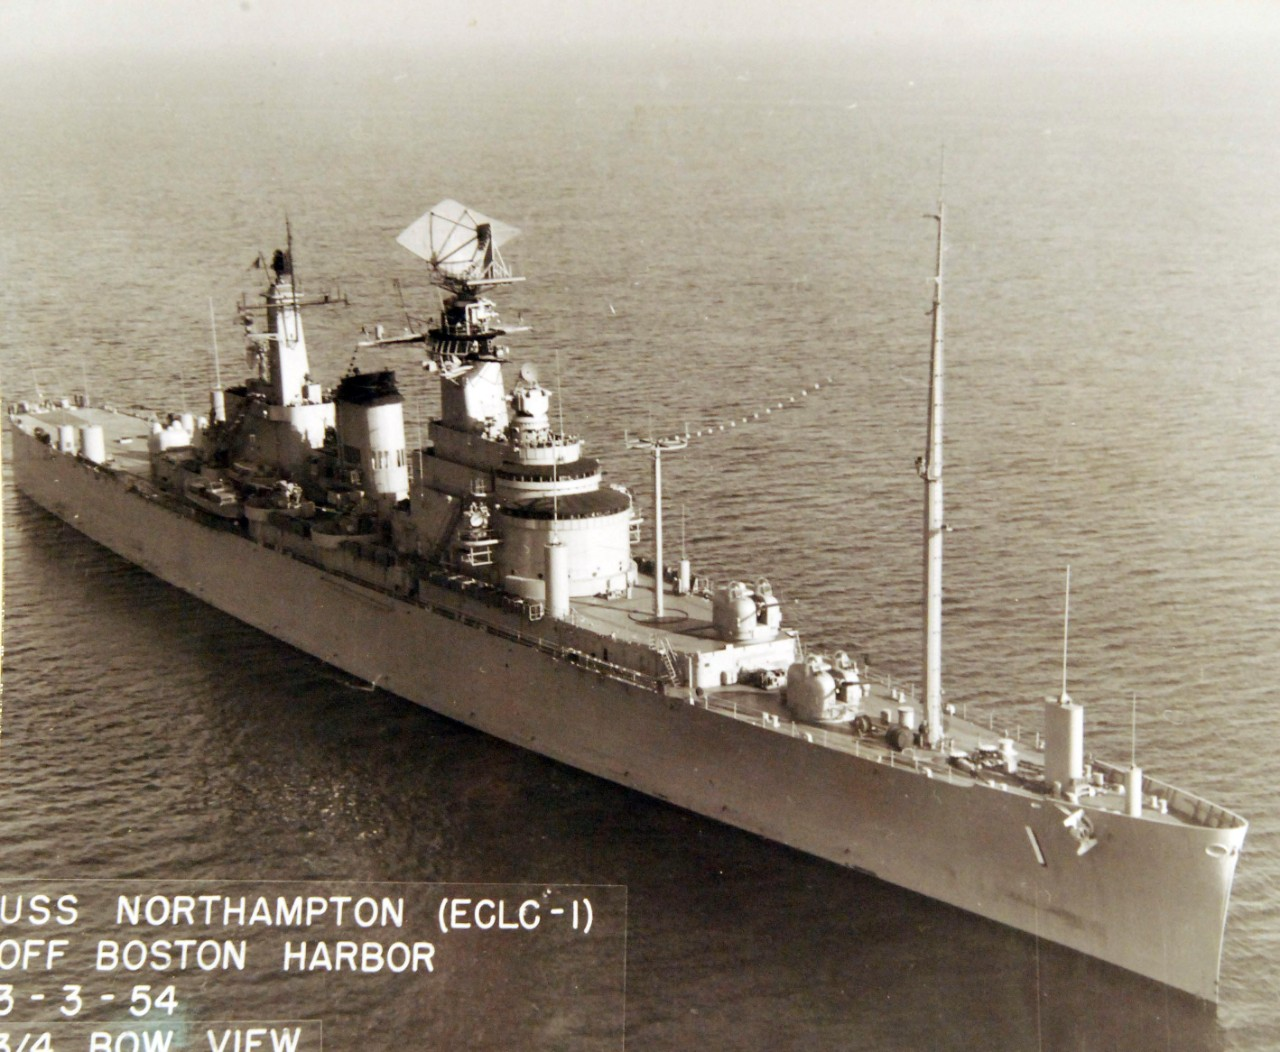 80-G-634774:  USS Northampton (CLC-1), 1954.    ¾ bow view off Boston Harbor, Massachusetts, March 3, 1954. Official U.S. Navy Photograph, now in the collections of the National Archives.  Same as 80-G-199191. (2017/11/15).